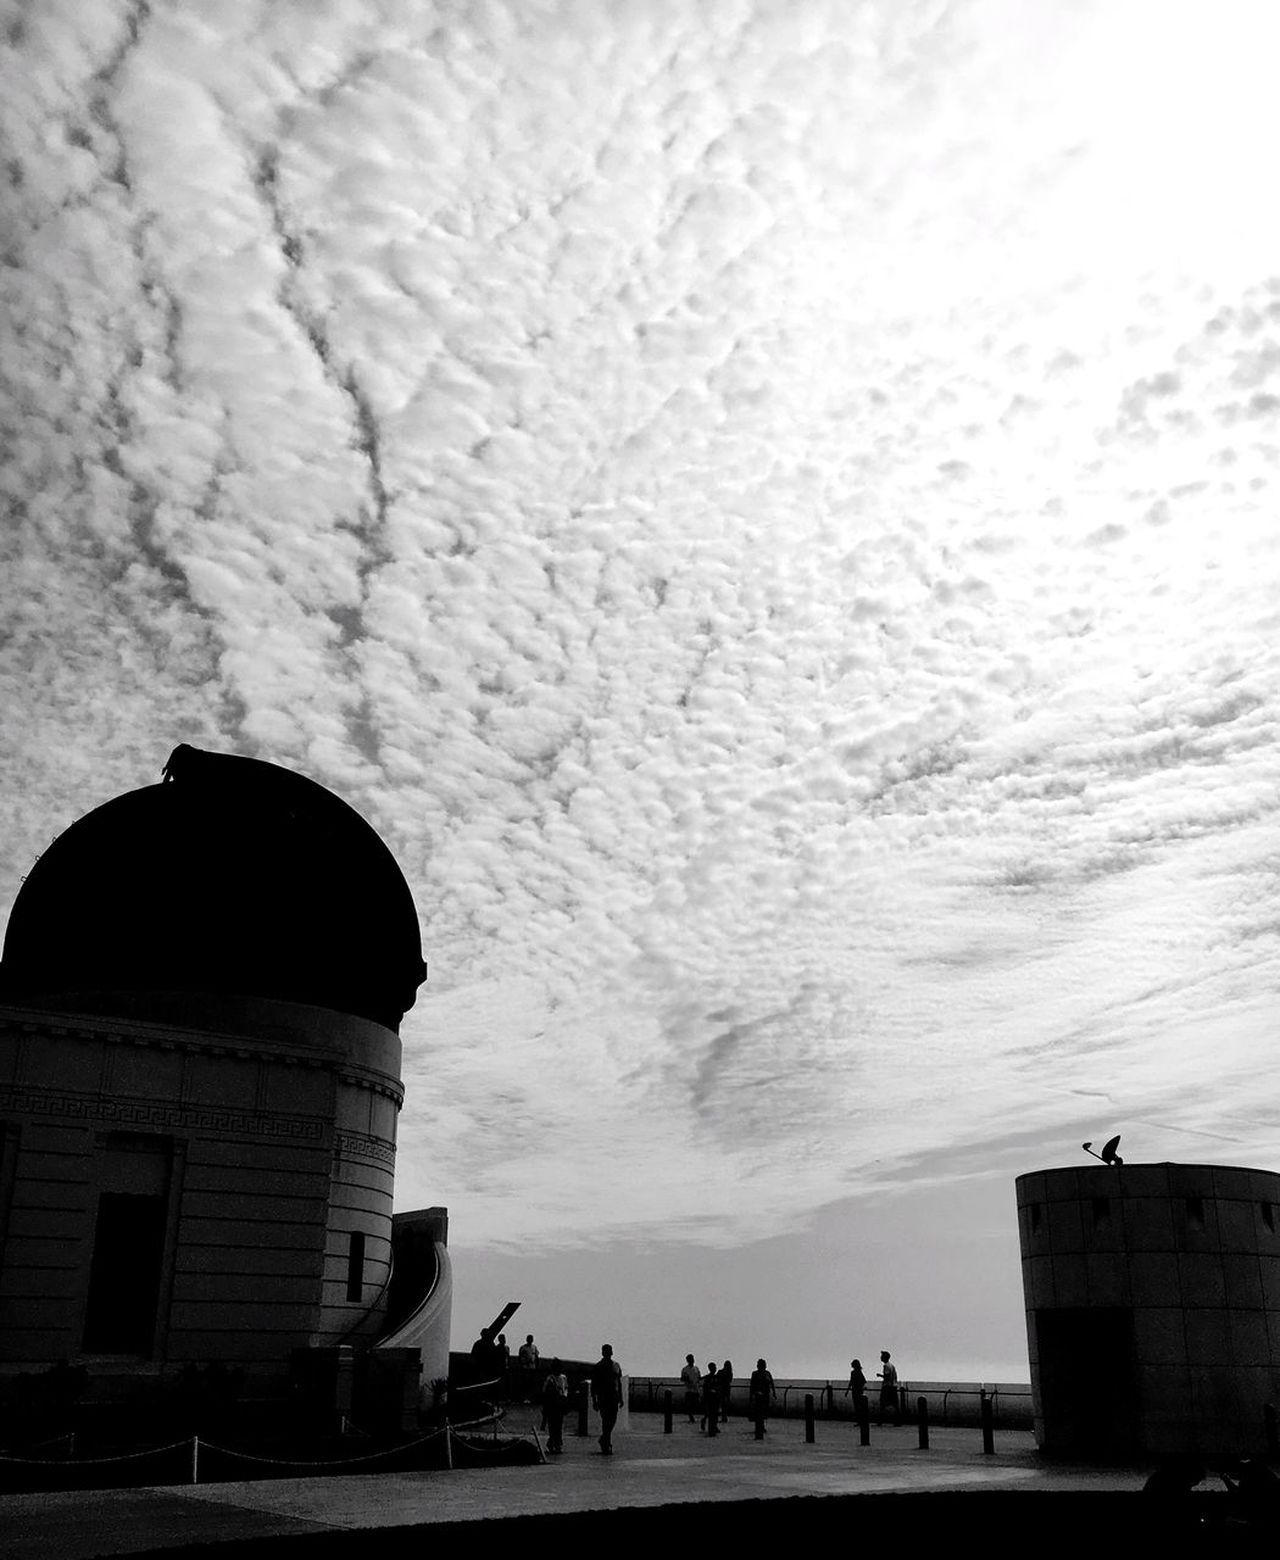 Architecture Building Exterior Built Structure Silhouette Dome City Sky Outdoors No People Place Of Worship Day Griffiths Observatory La La Land Iconic Landmark